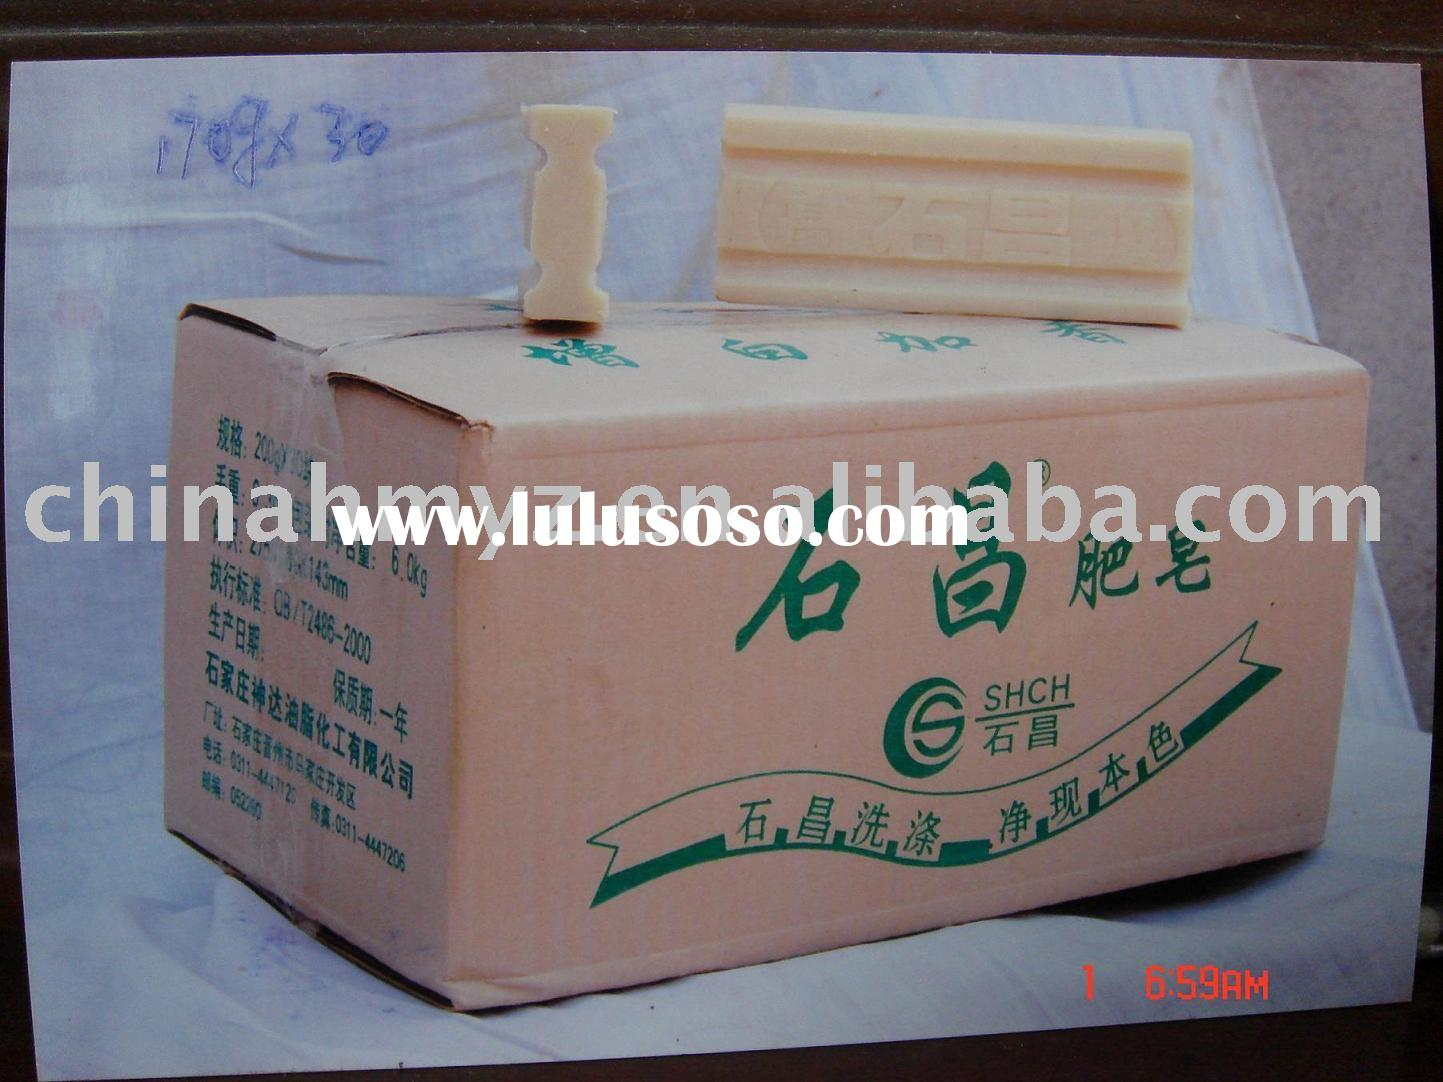 ShiChang laundry soap